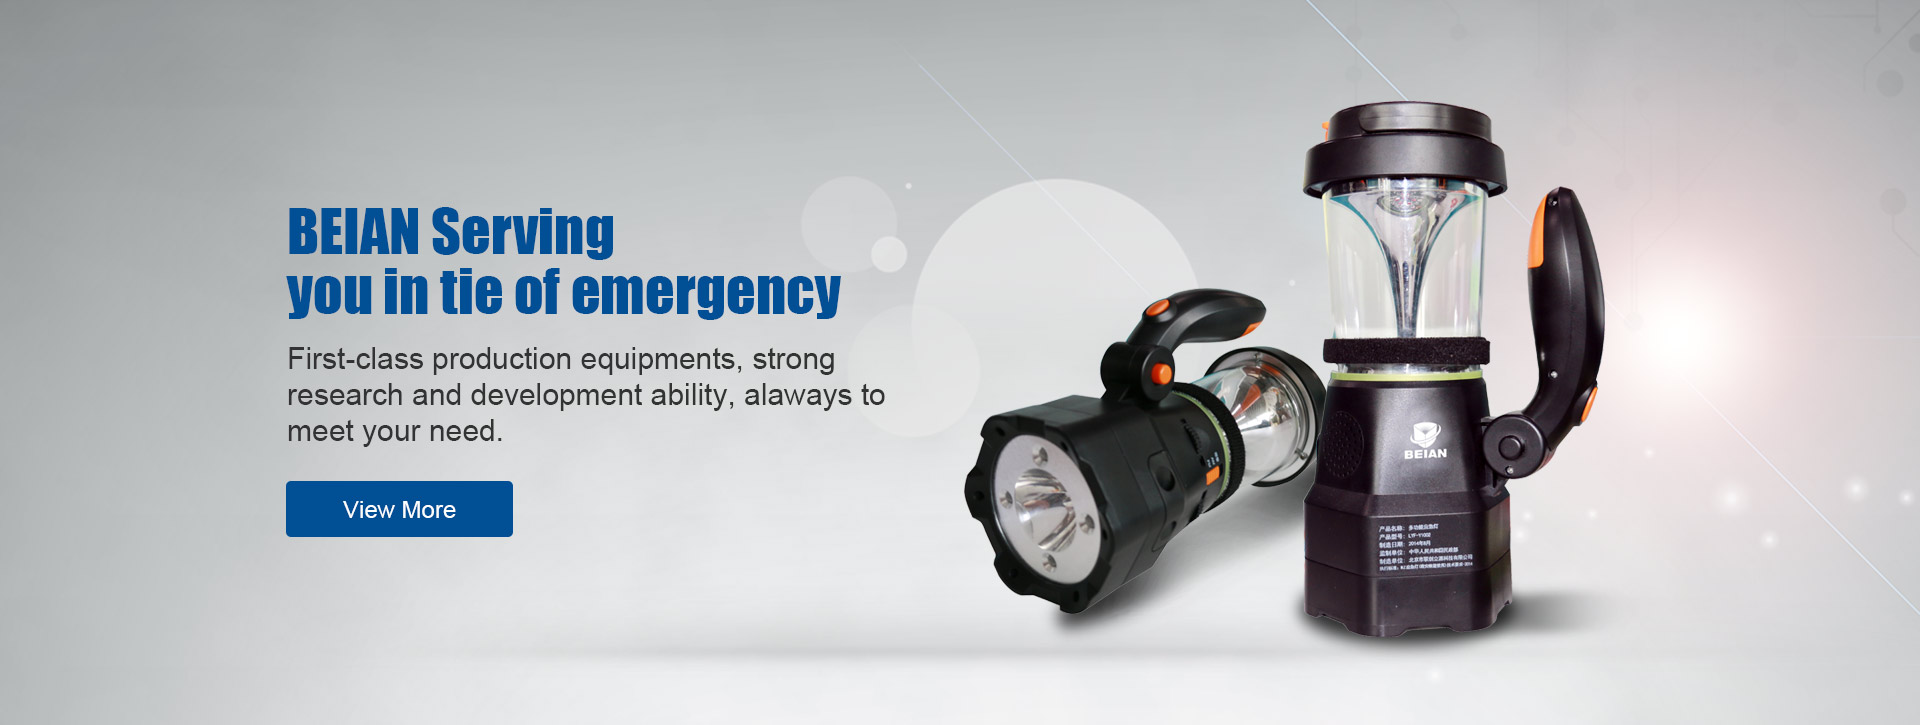 LED Multi-Function Lighting Products